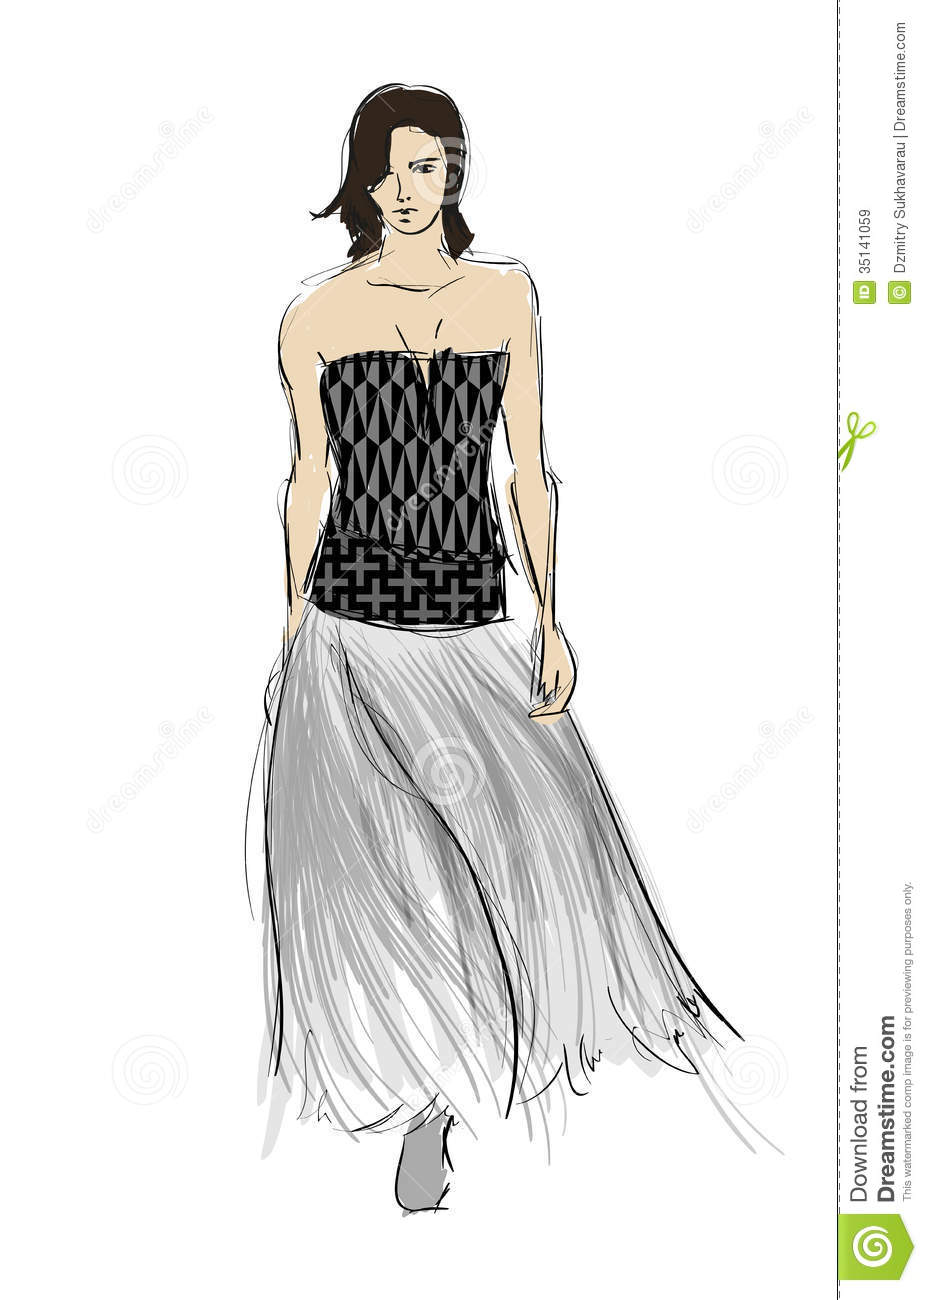 Sketch Fashion Girls Royalty Free Stock Images Image 35141059